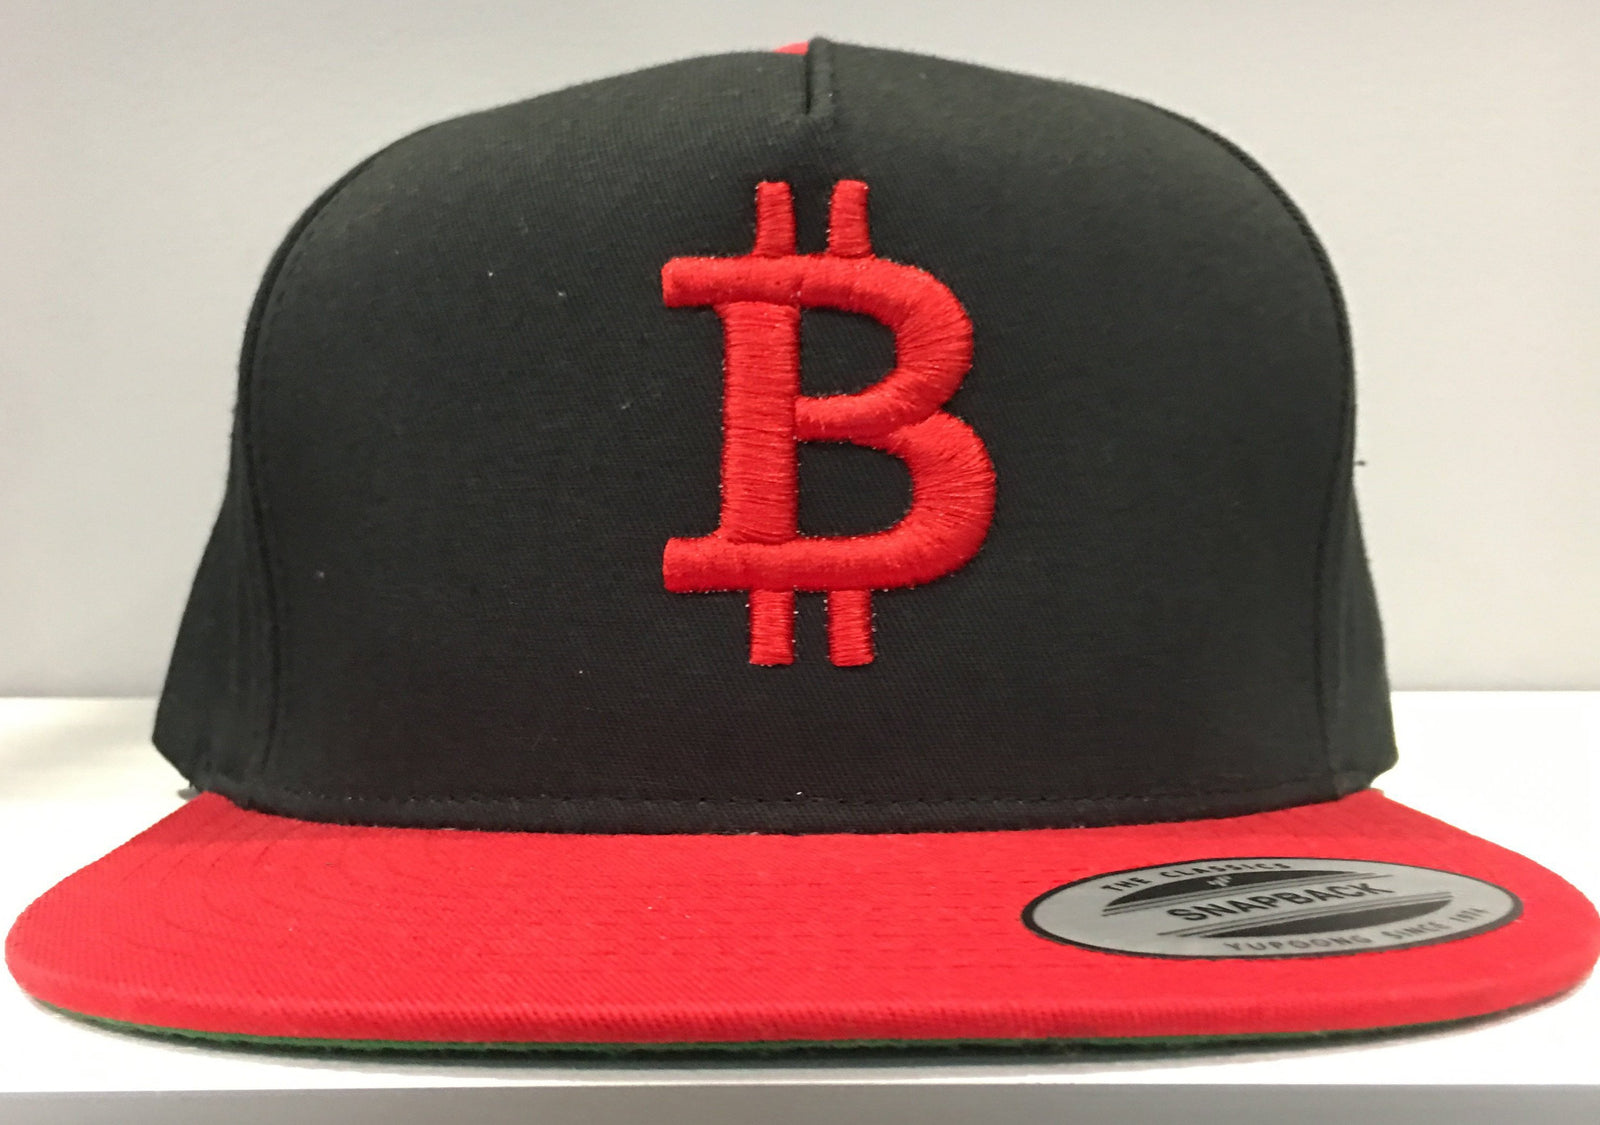 Bitcoin Snapback Hat Crypto Currency